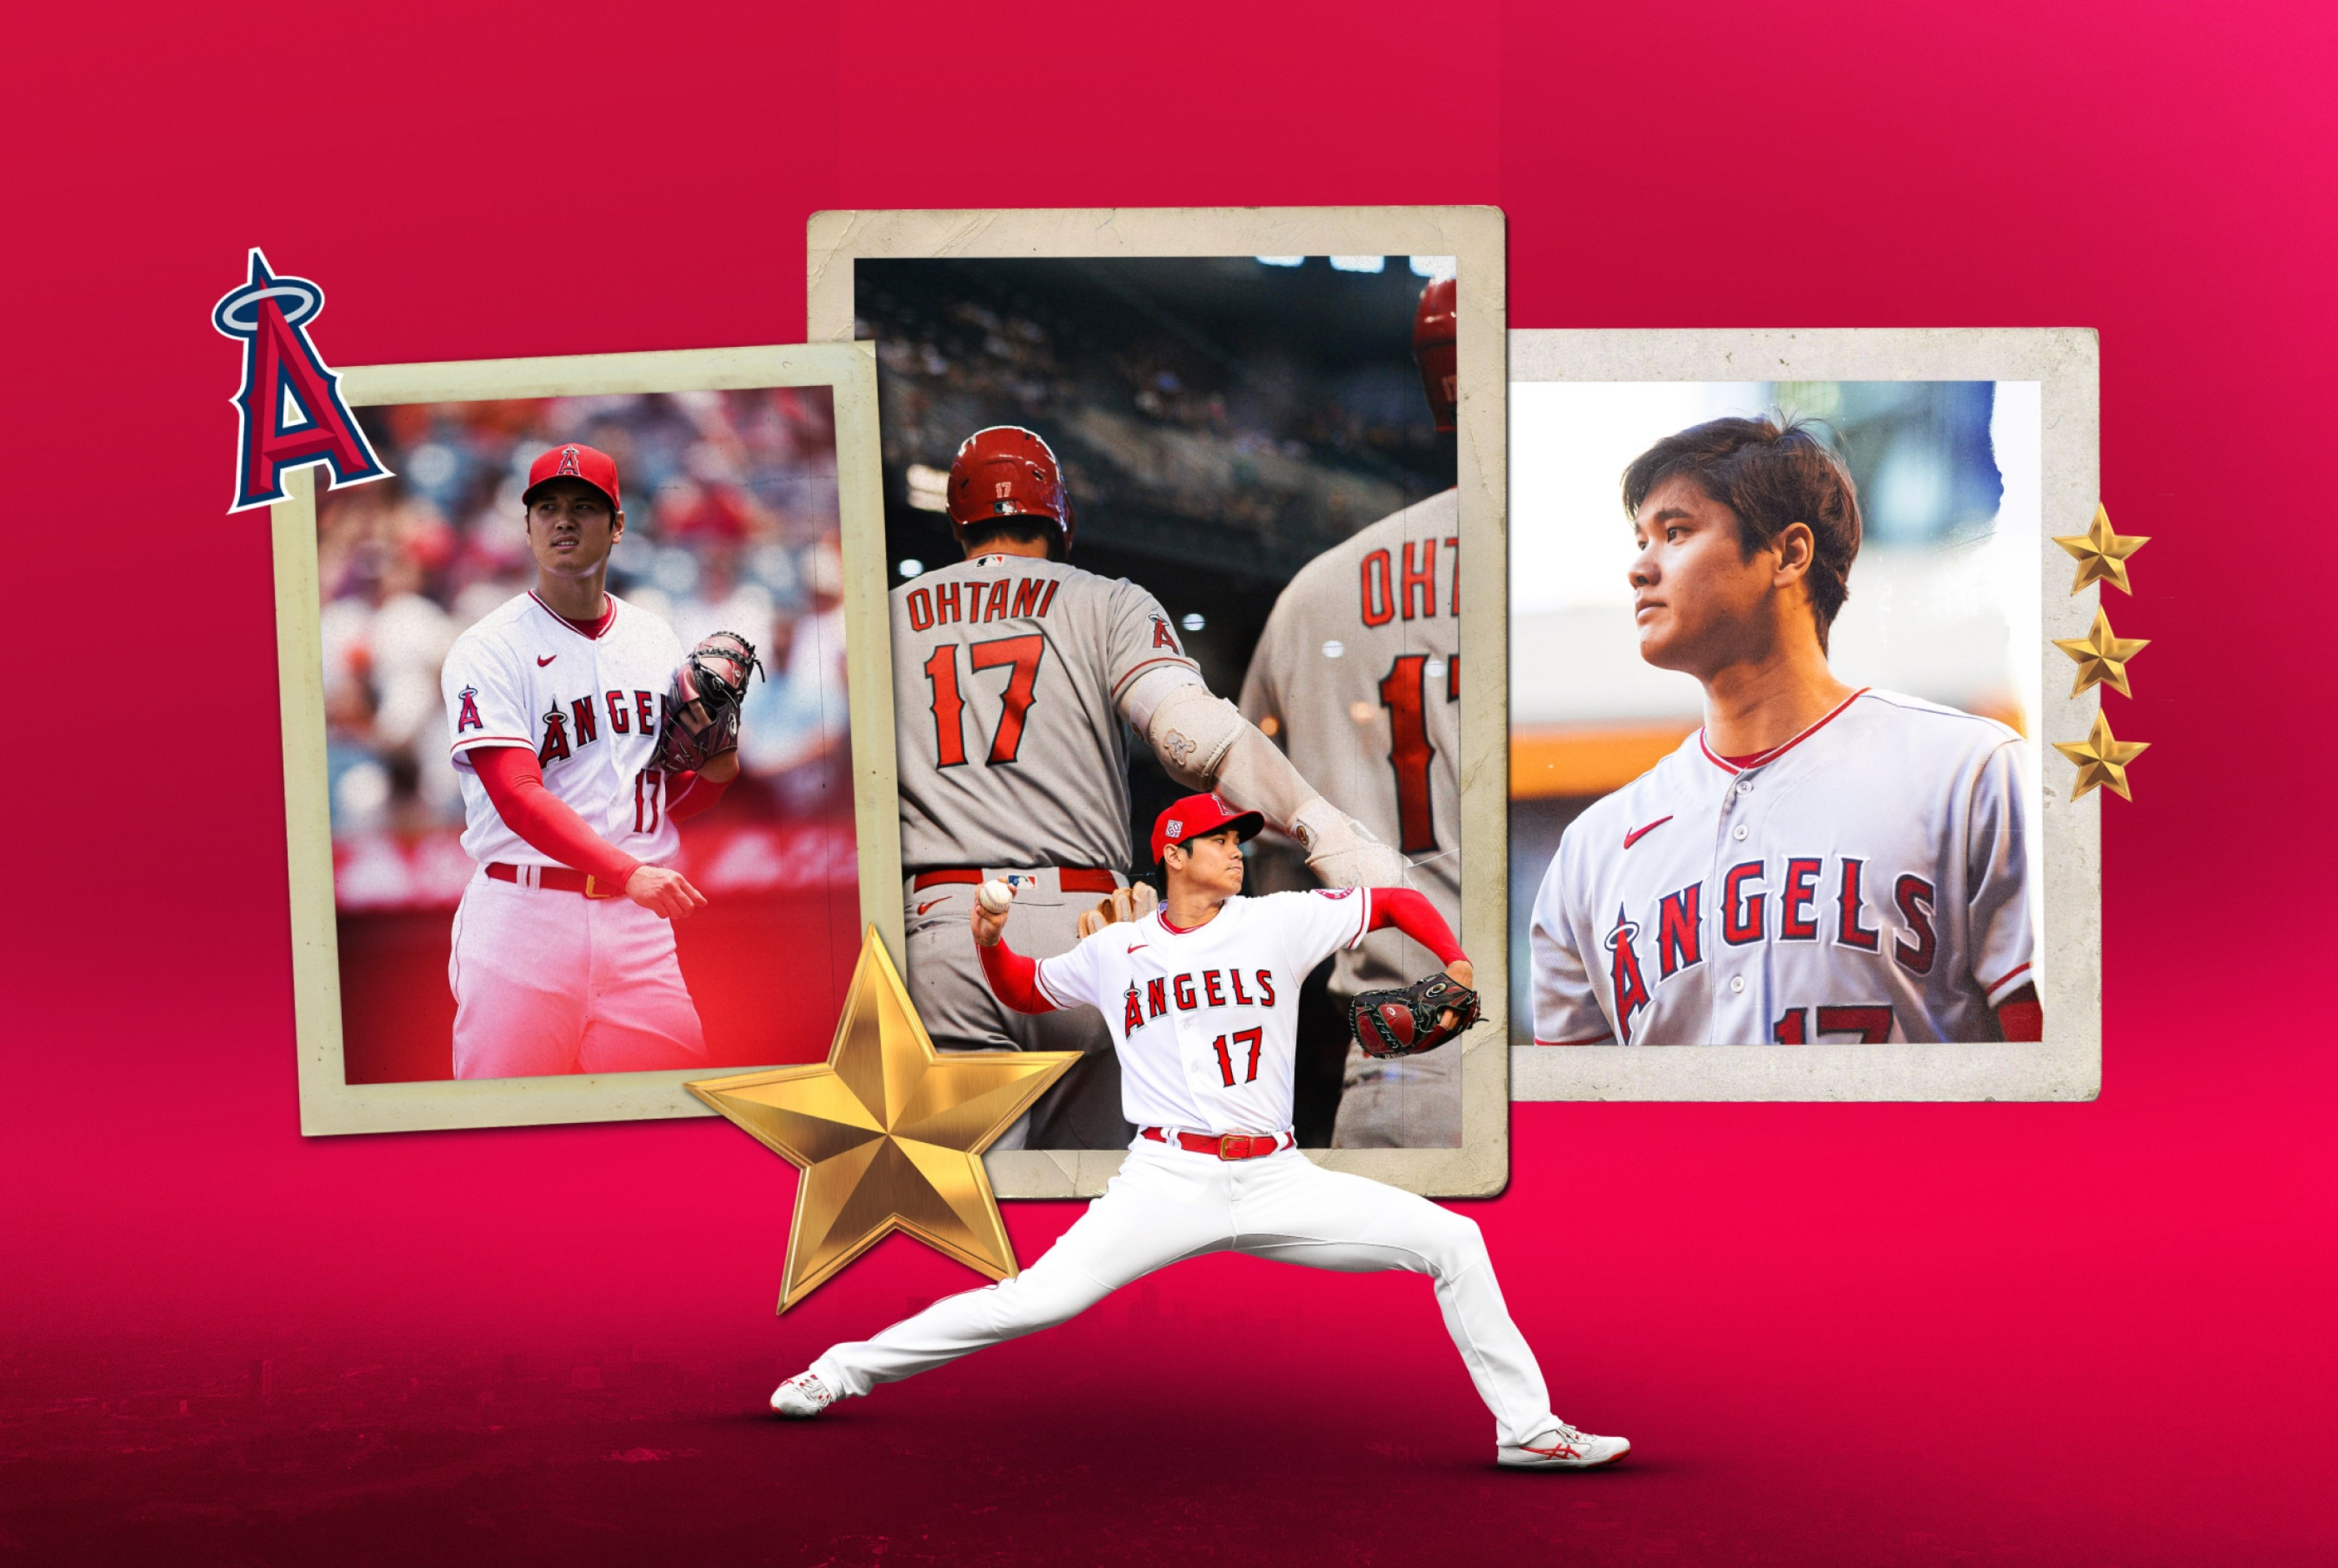 Legend of Shohei Ohtani grows by the day as modern-day Babe Ruth